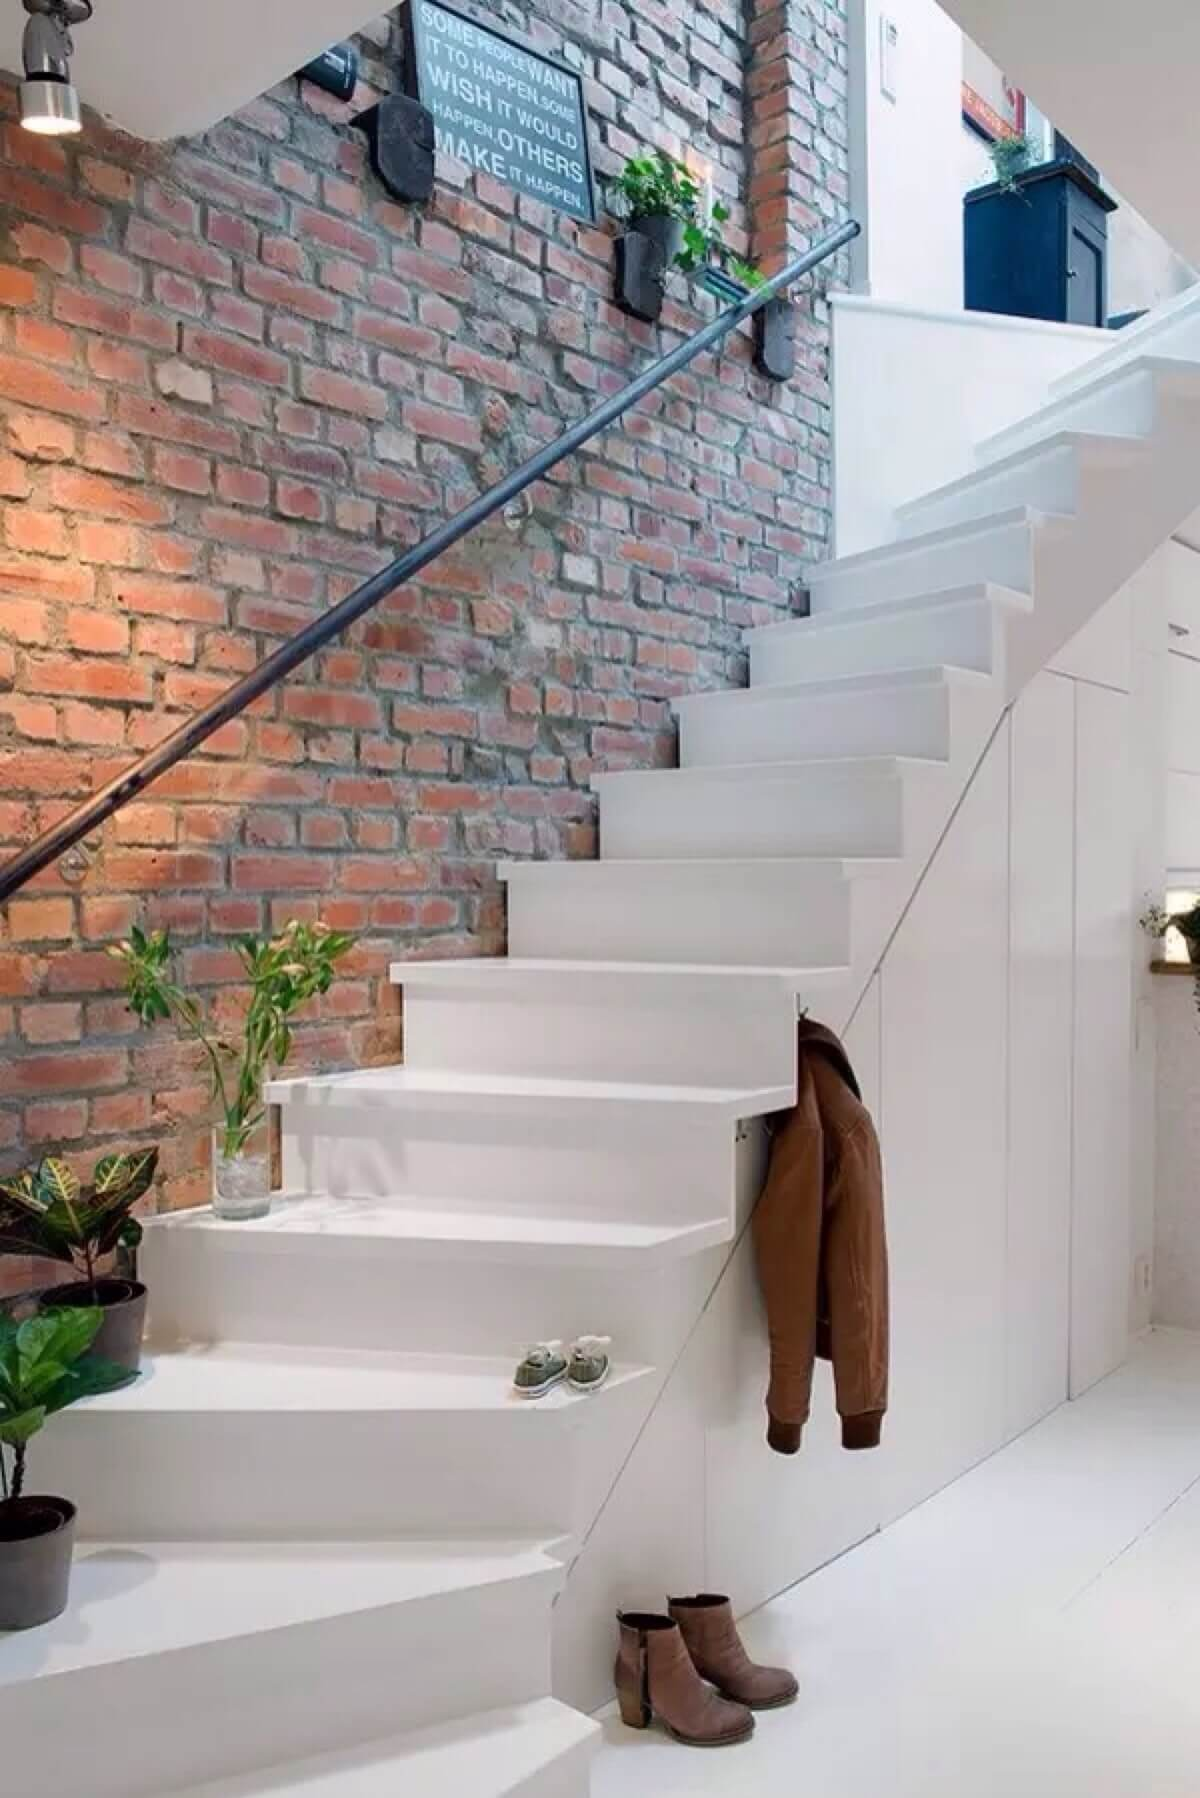 Exposed Brick and a Winding Staircase